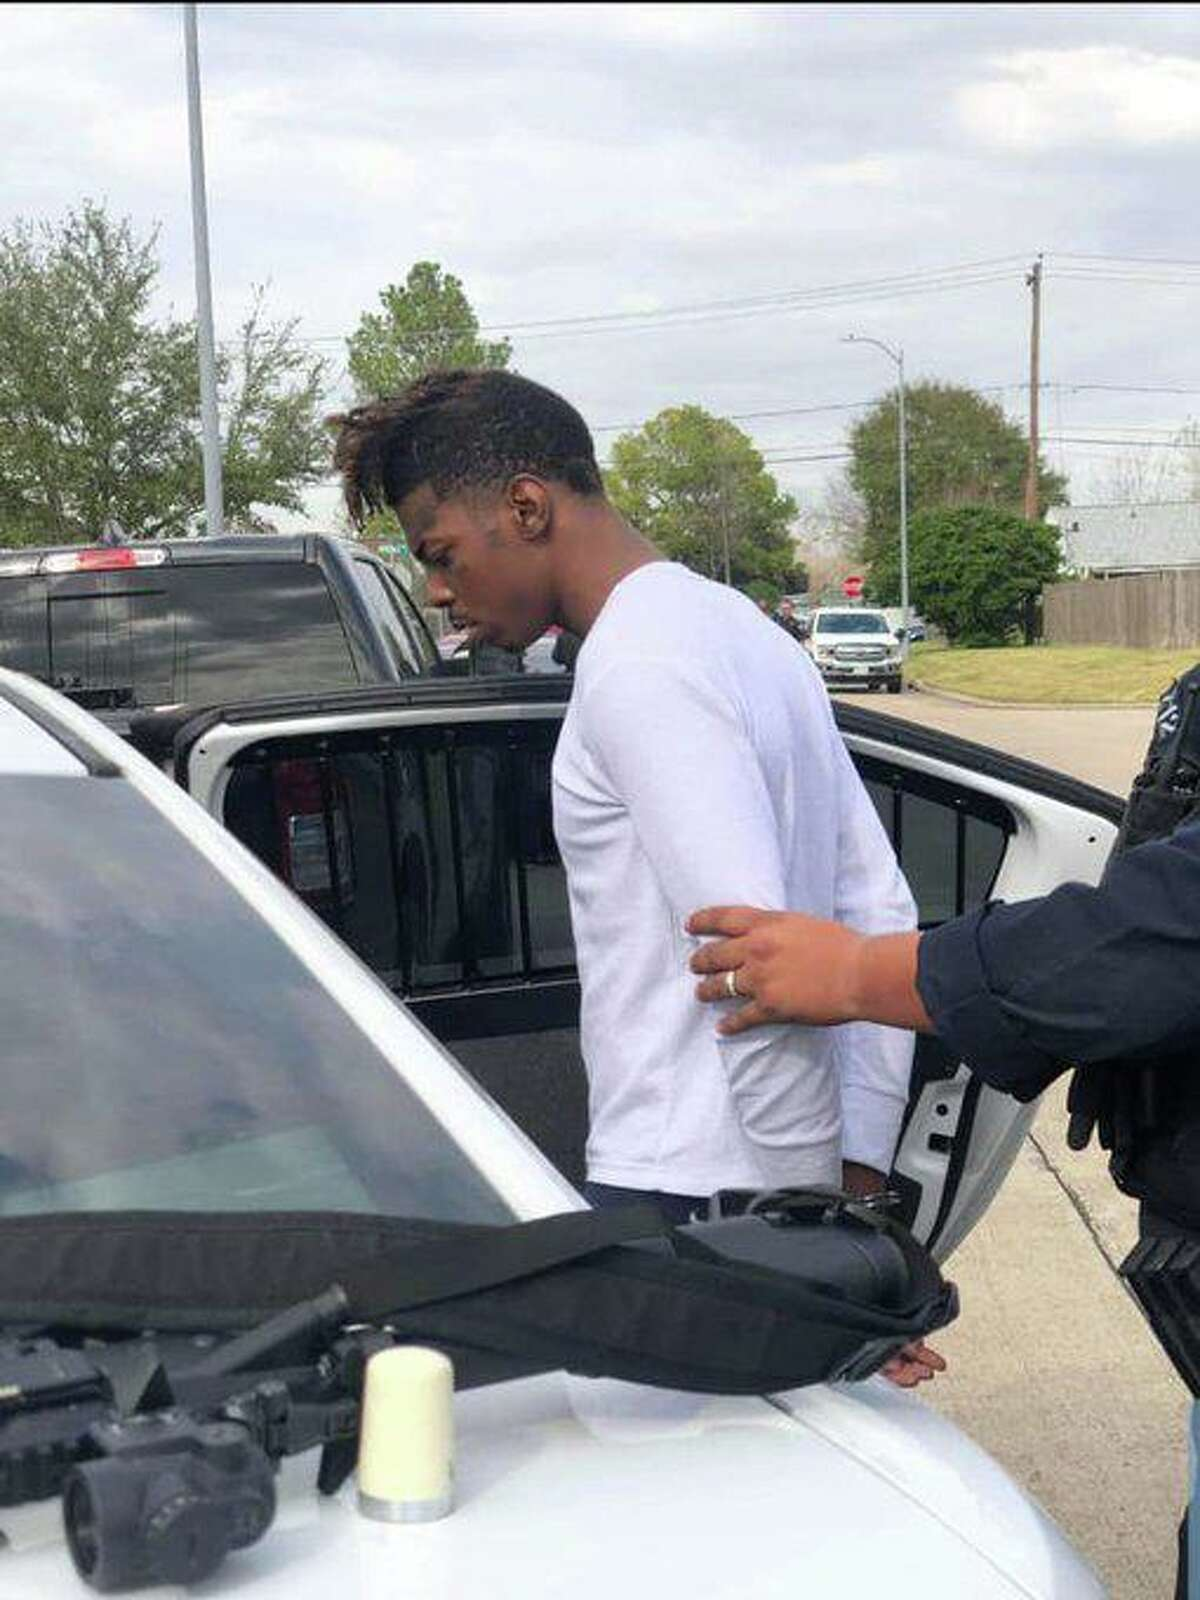 Harris County sheriff's deputies escort Tavores Henderson, alleged murderer of Nassau Bay Police Sgt. Kaila Sullivan, into a car after a two-day manhunt.